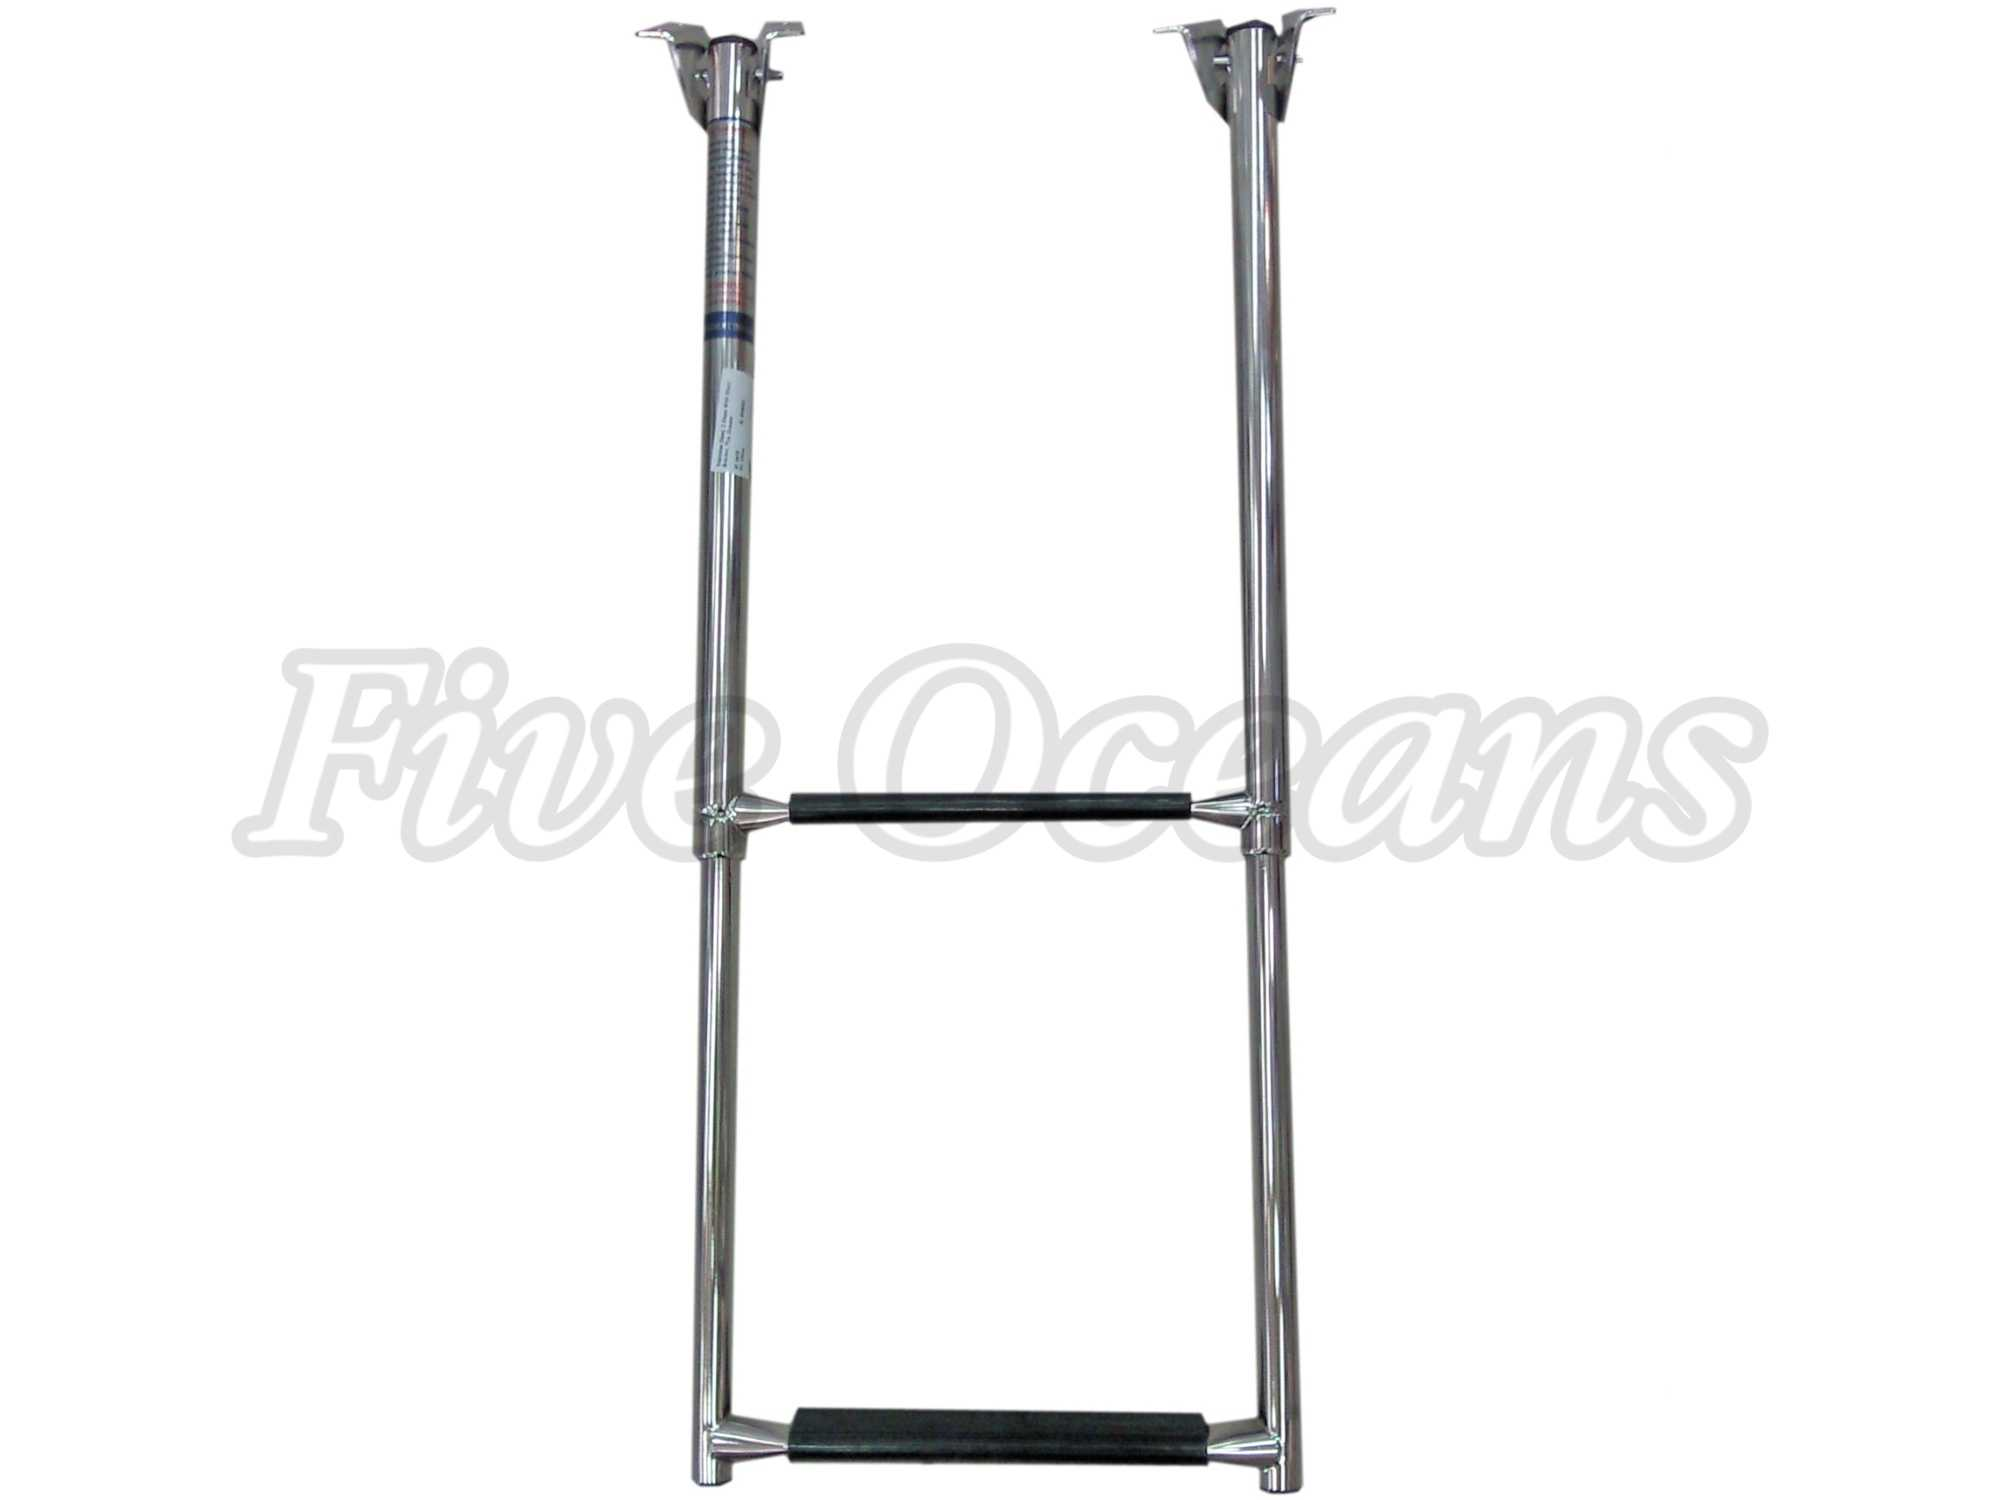 Five Oceans Stanless Steel 2 Steps Telescopic Ladder for Boat - BC 478